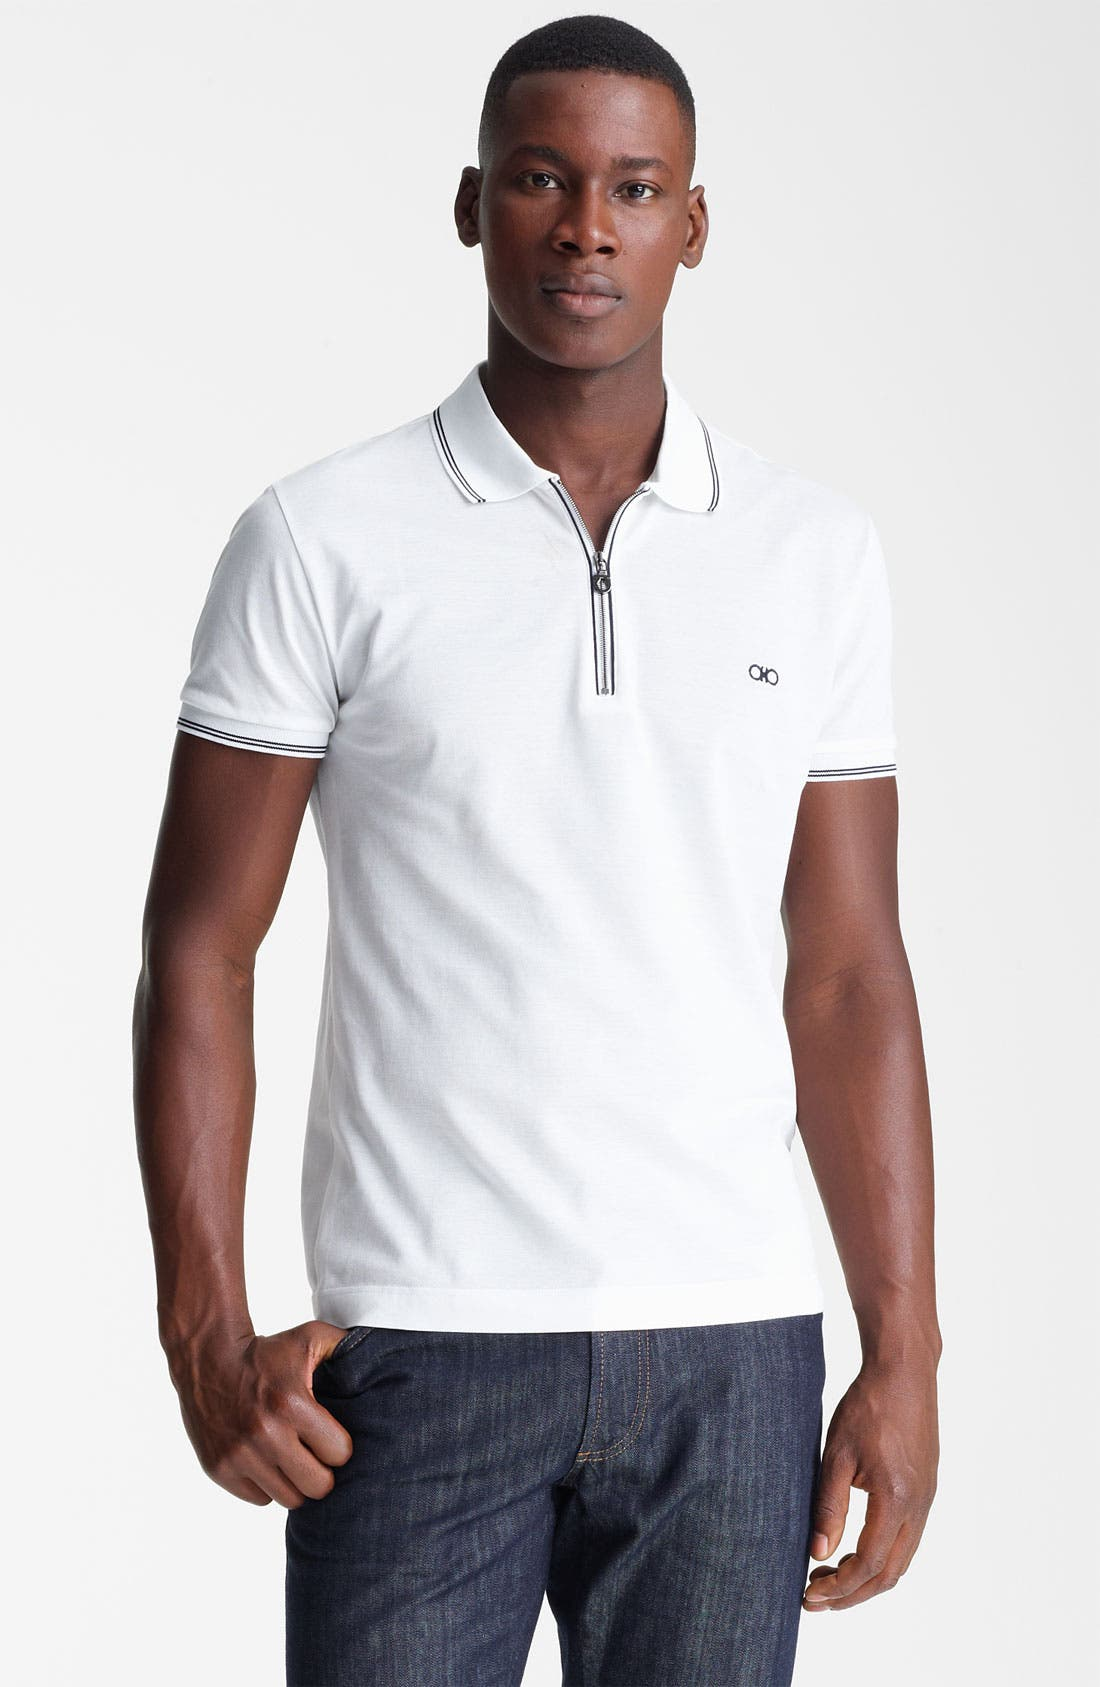 Main Image - Salvatore Ferragamo Zip Piqué Trim Fit Polo